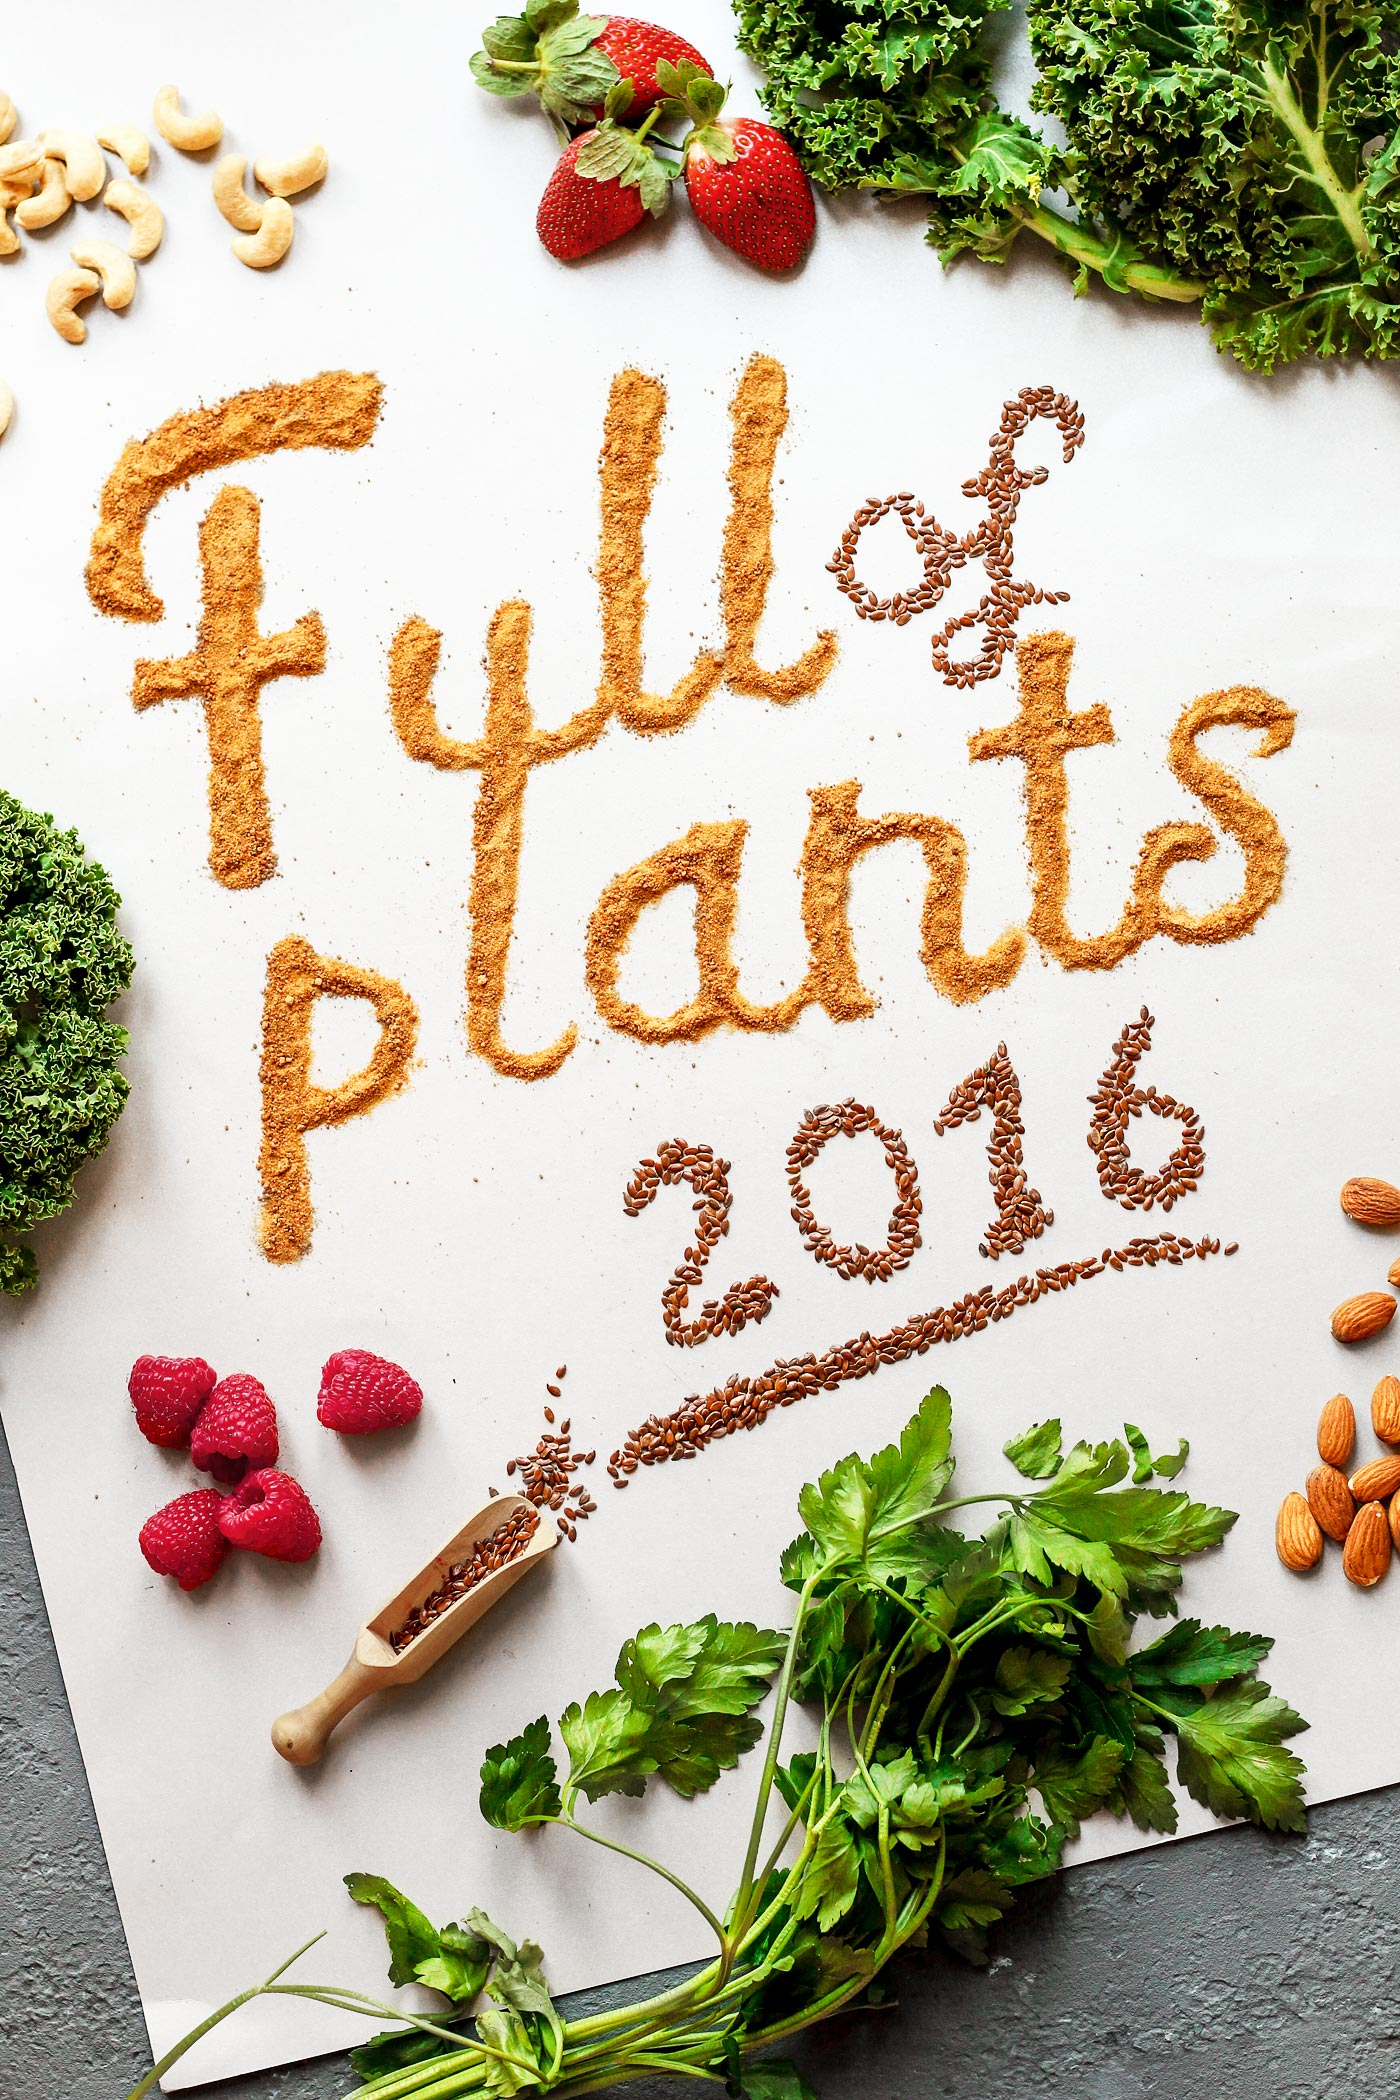 Full of Plants - Best of 2016